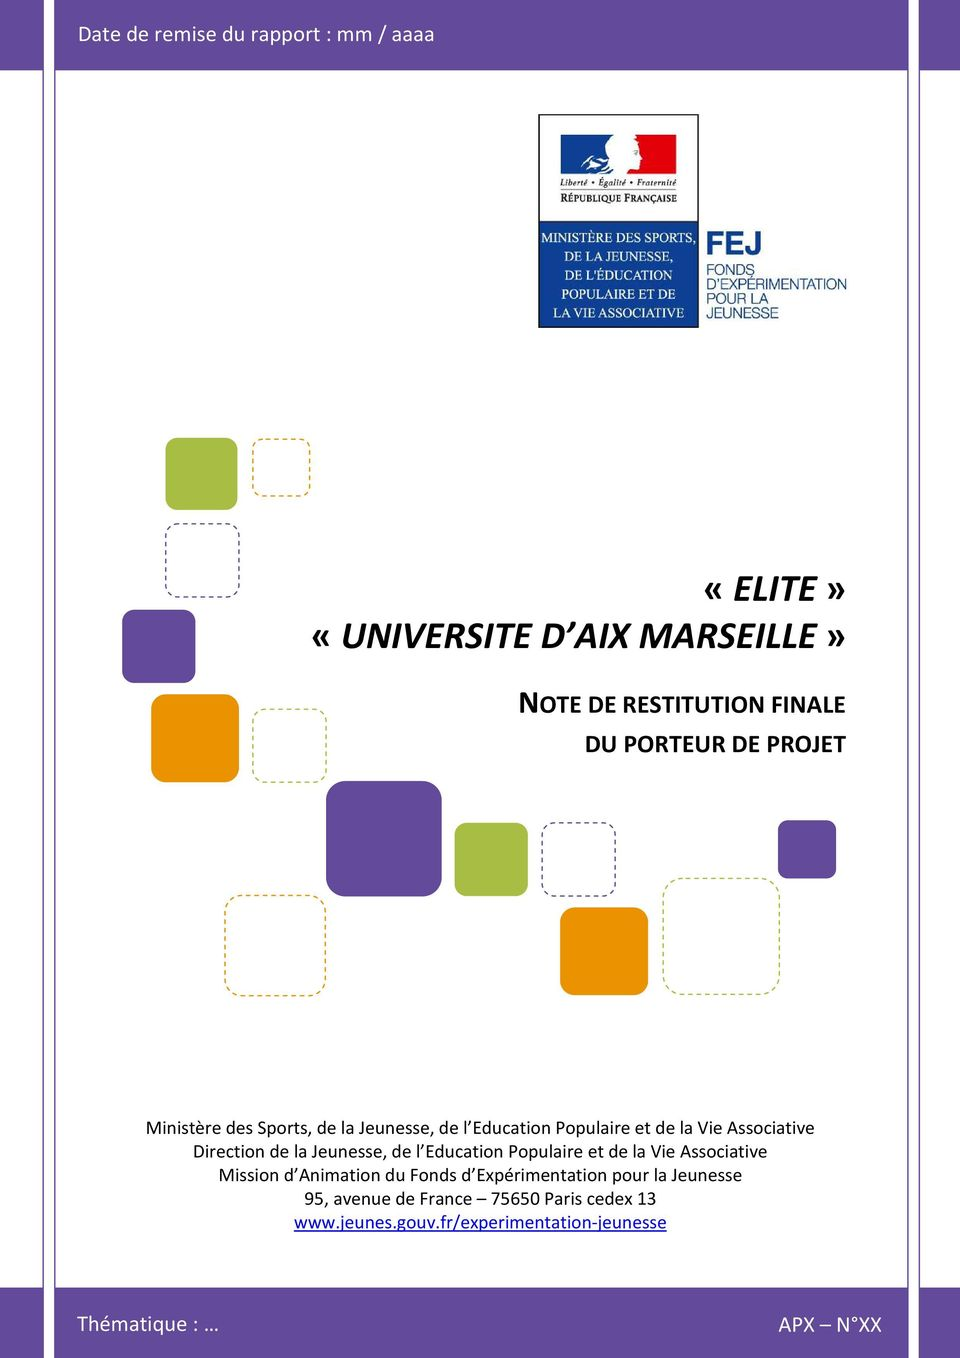 Associative Direction de la Jeunesse, de l Education Populaire et de la Vie Associative Mission d